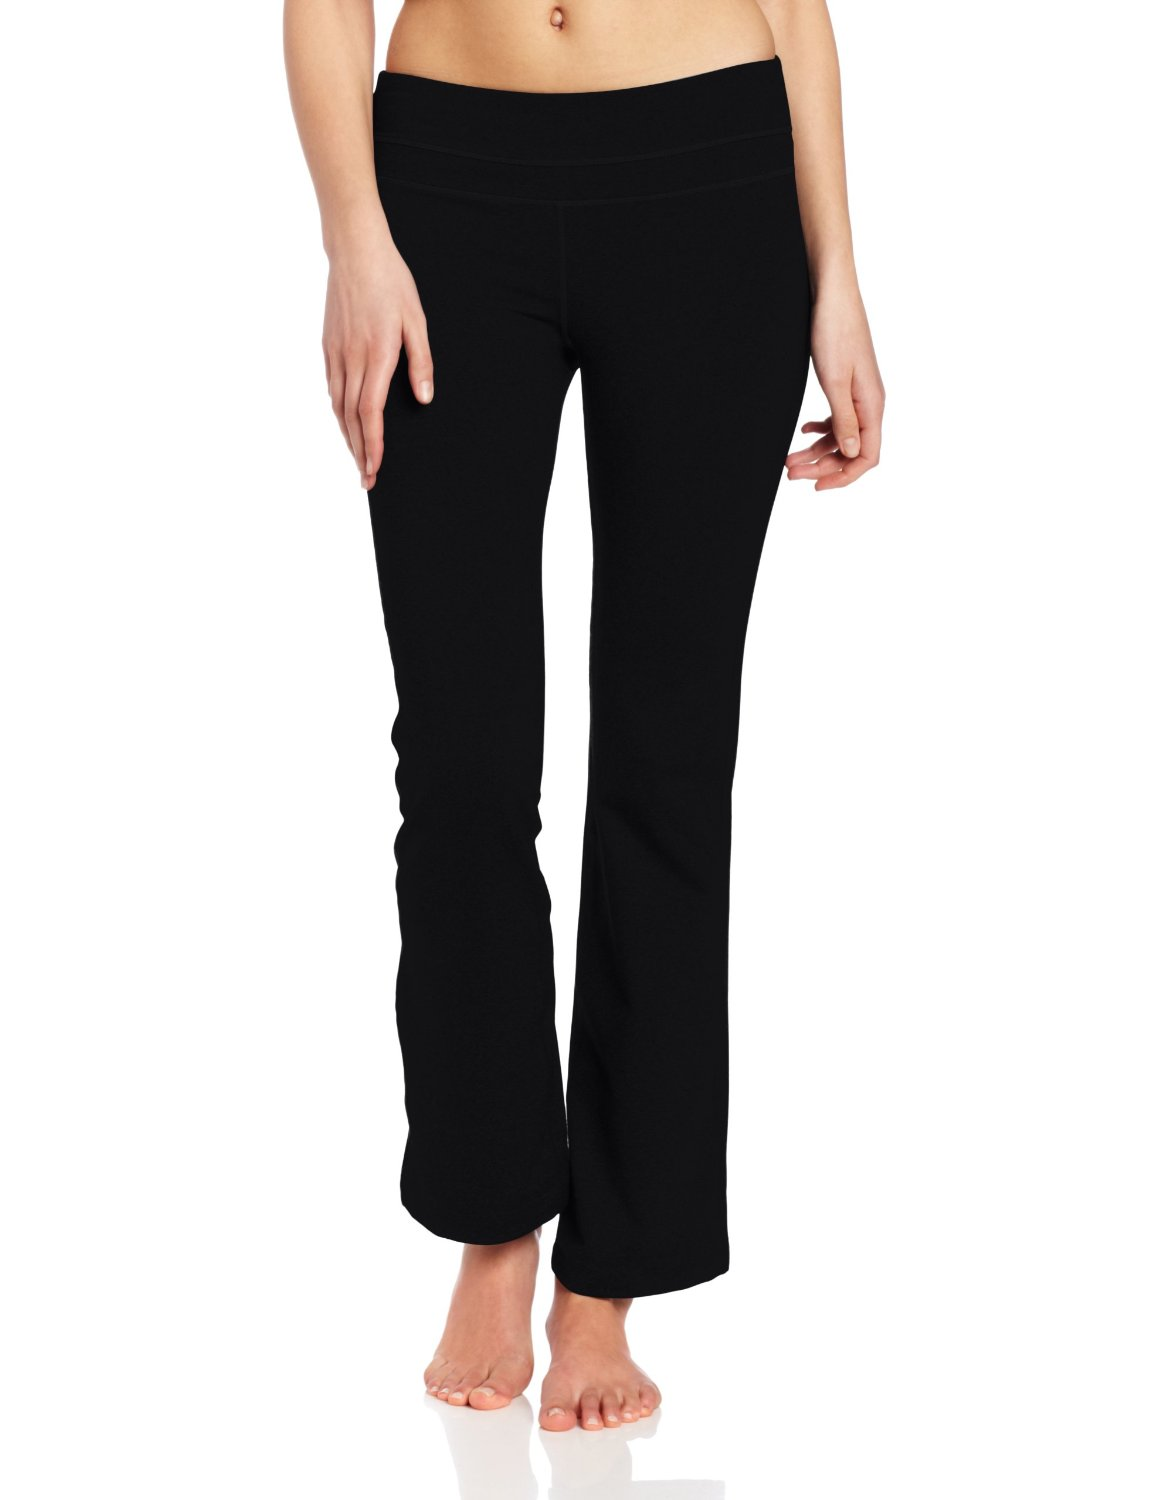 Prana Audrey Athletic Pants